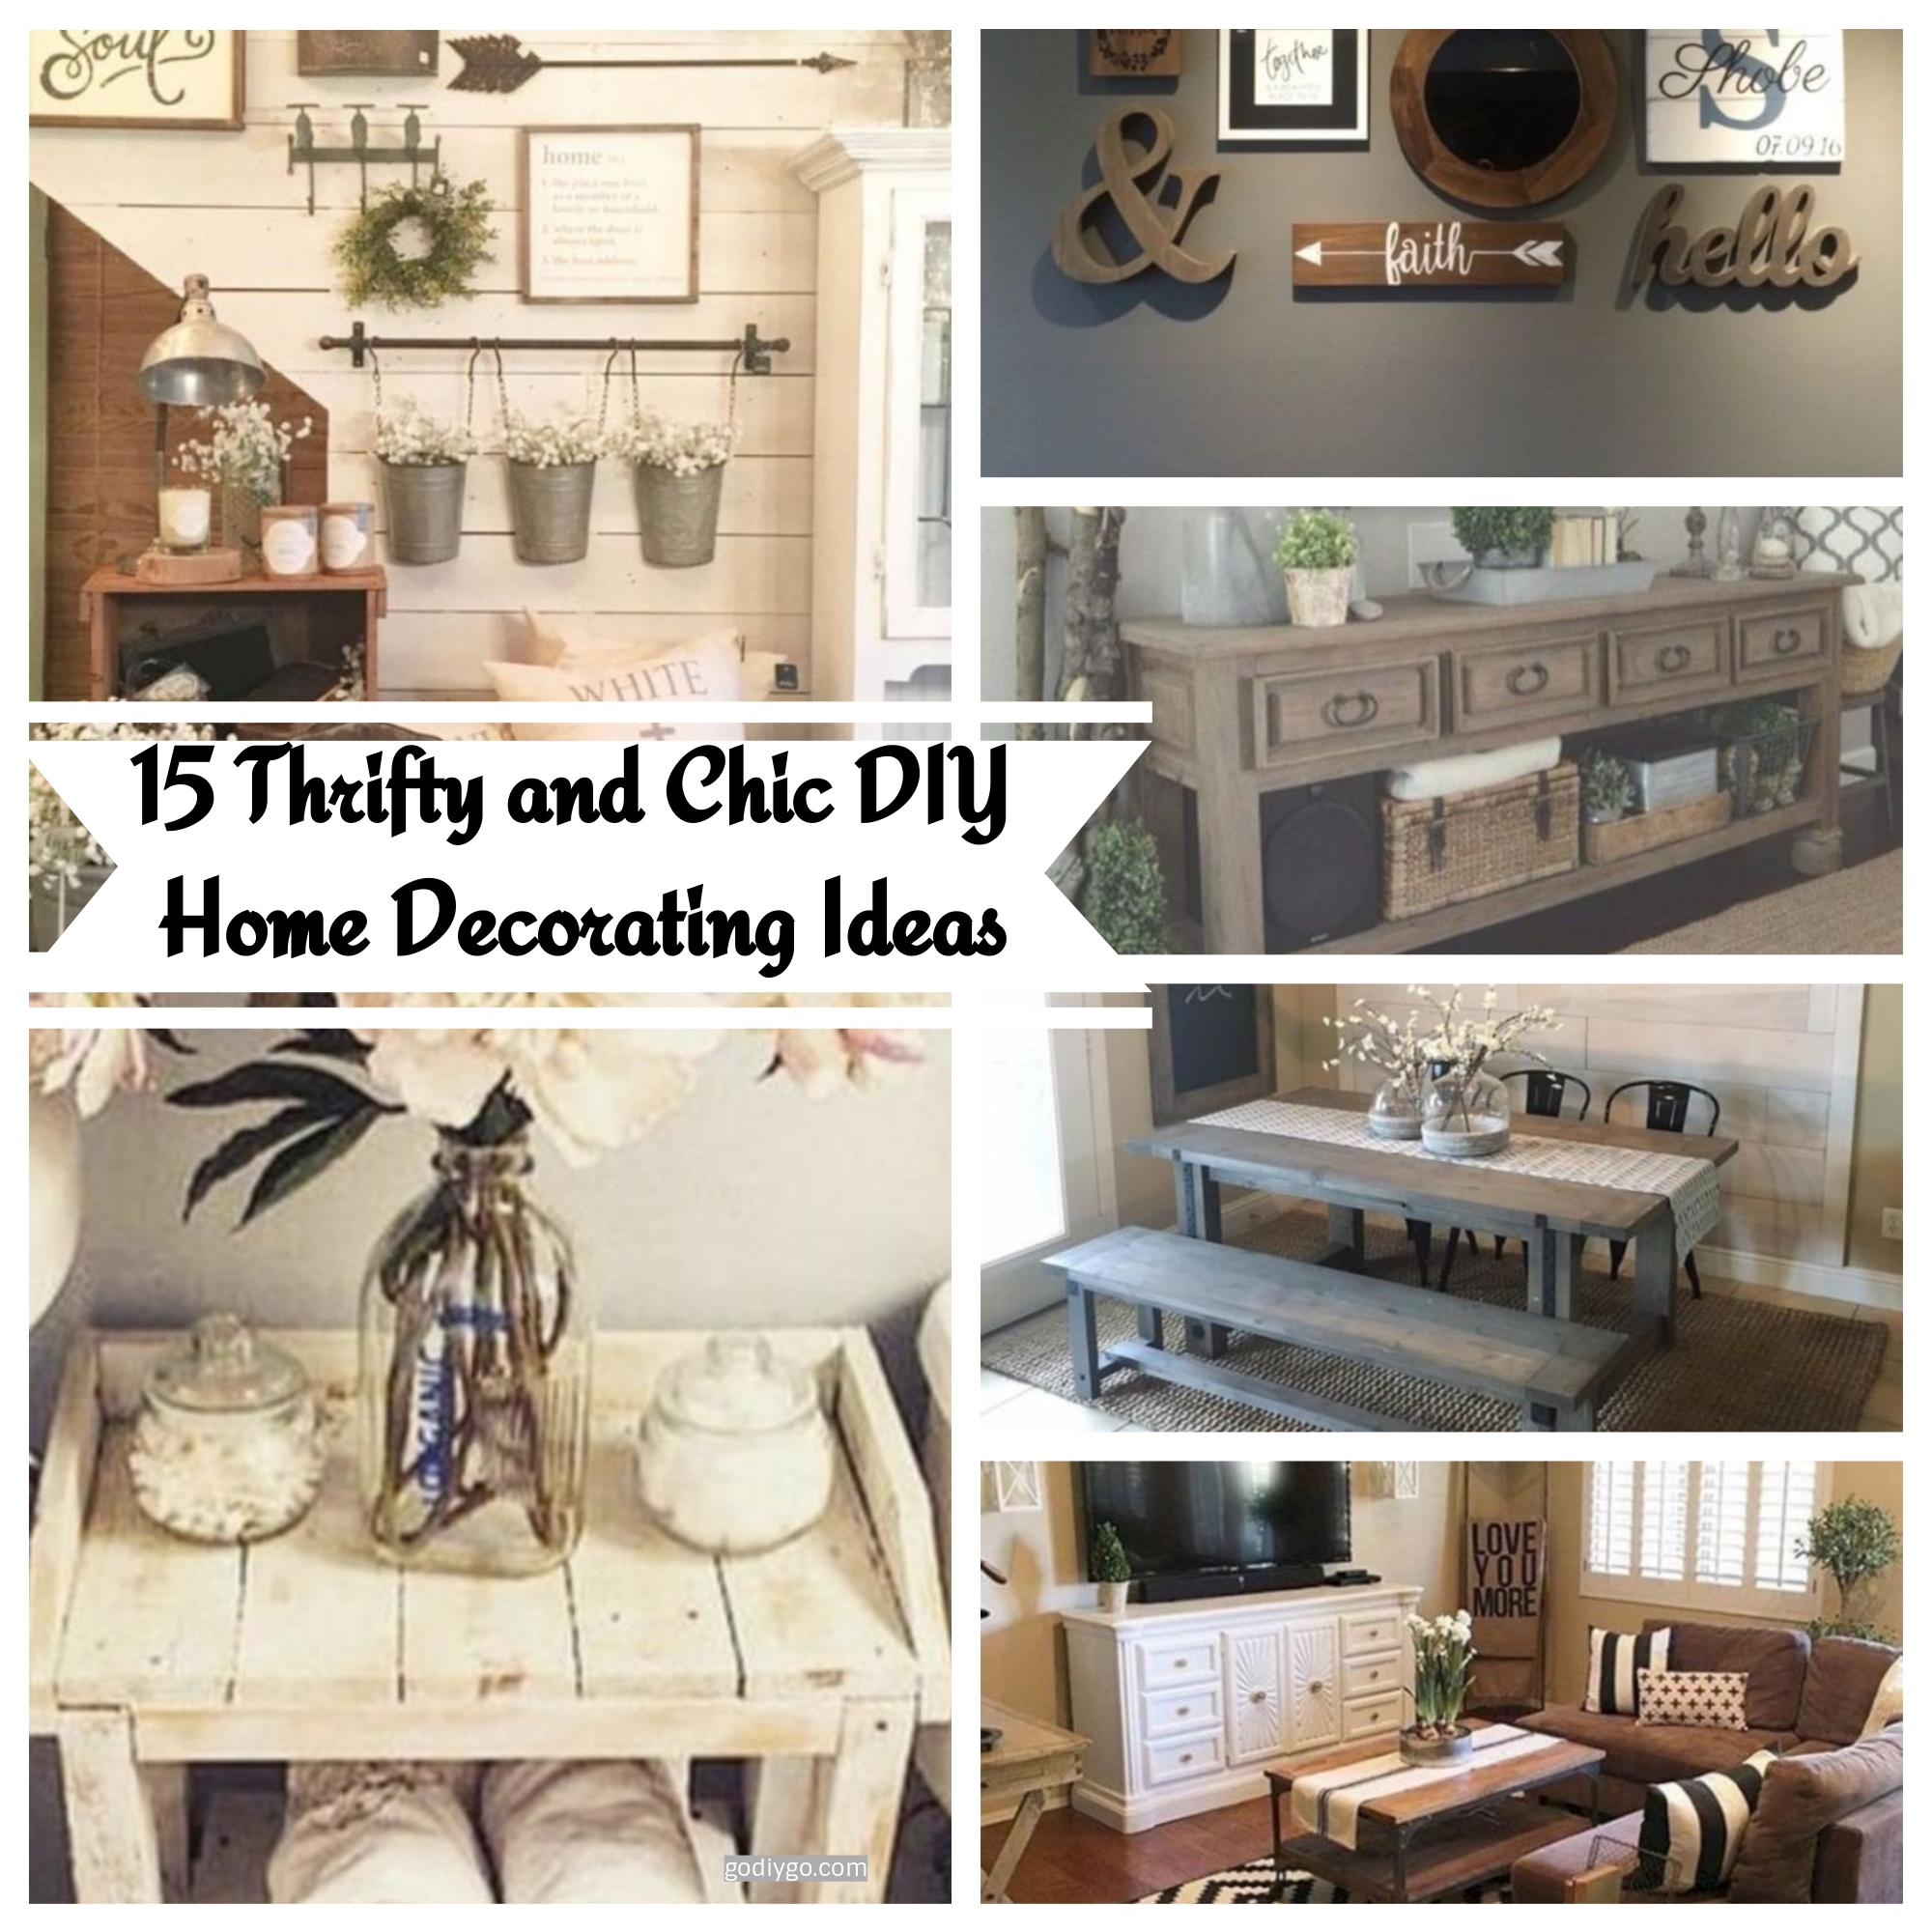 Home Design Ideas Videos: 15 Thrifty And Chic DIY Home Decorating Ideas